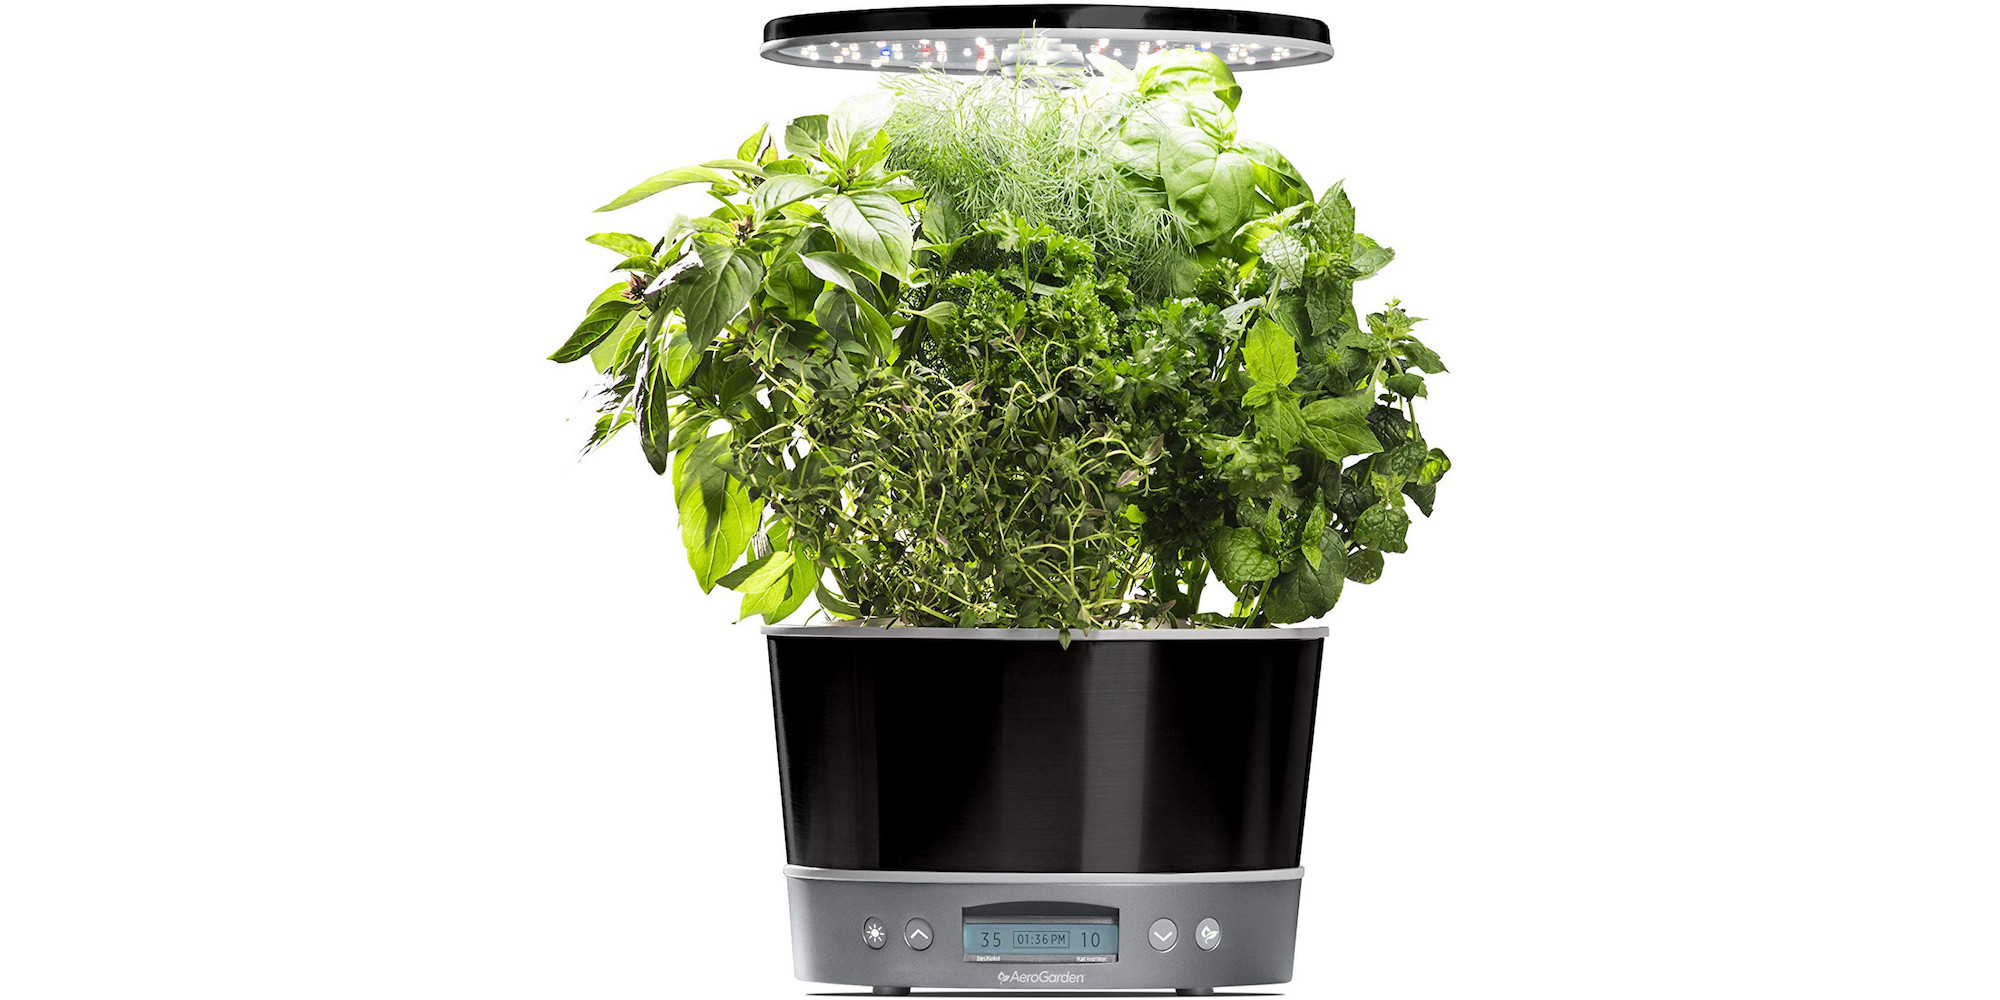 Get fresh herbs all year with an Elite 360 AeroGarden for $75 (Reg. $142+) - 9to5Toys